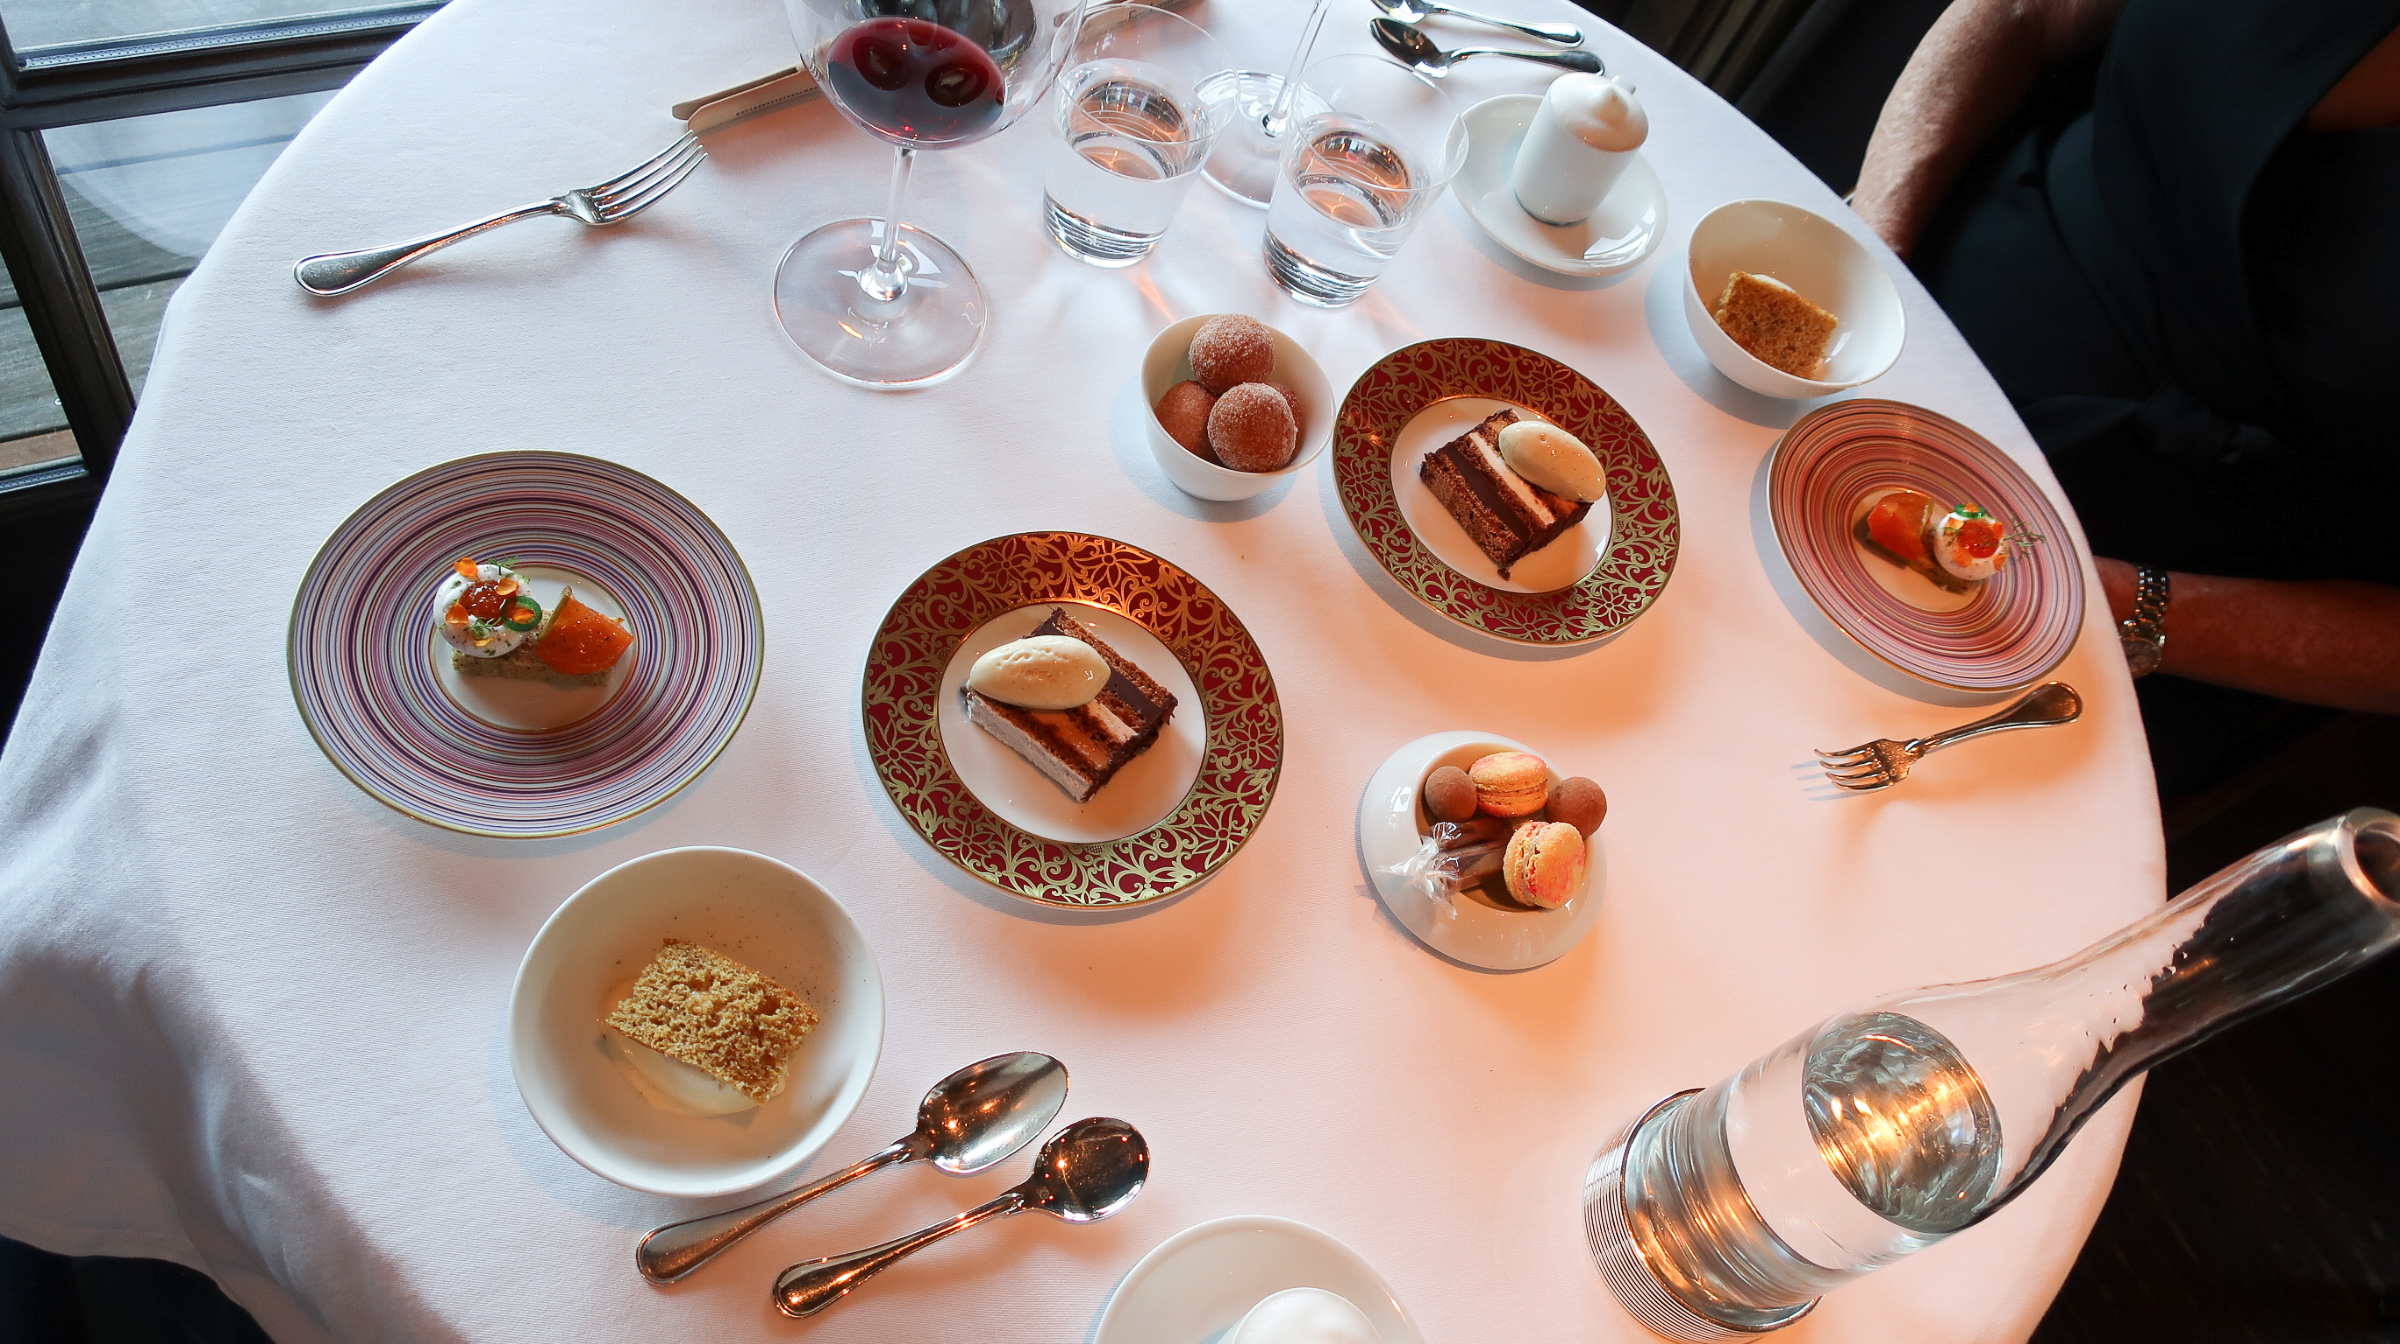 Desserts at the French Laundry